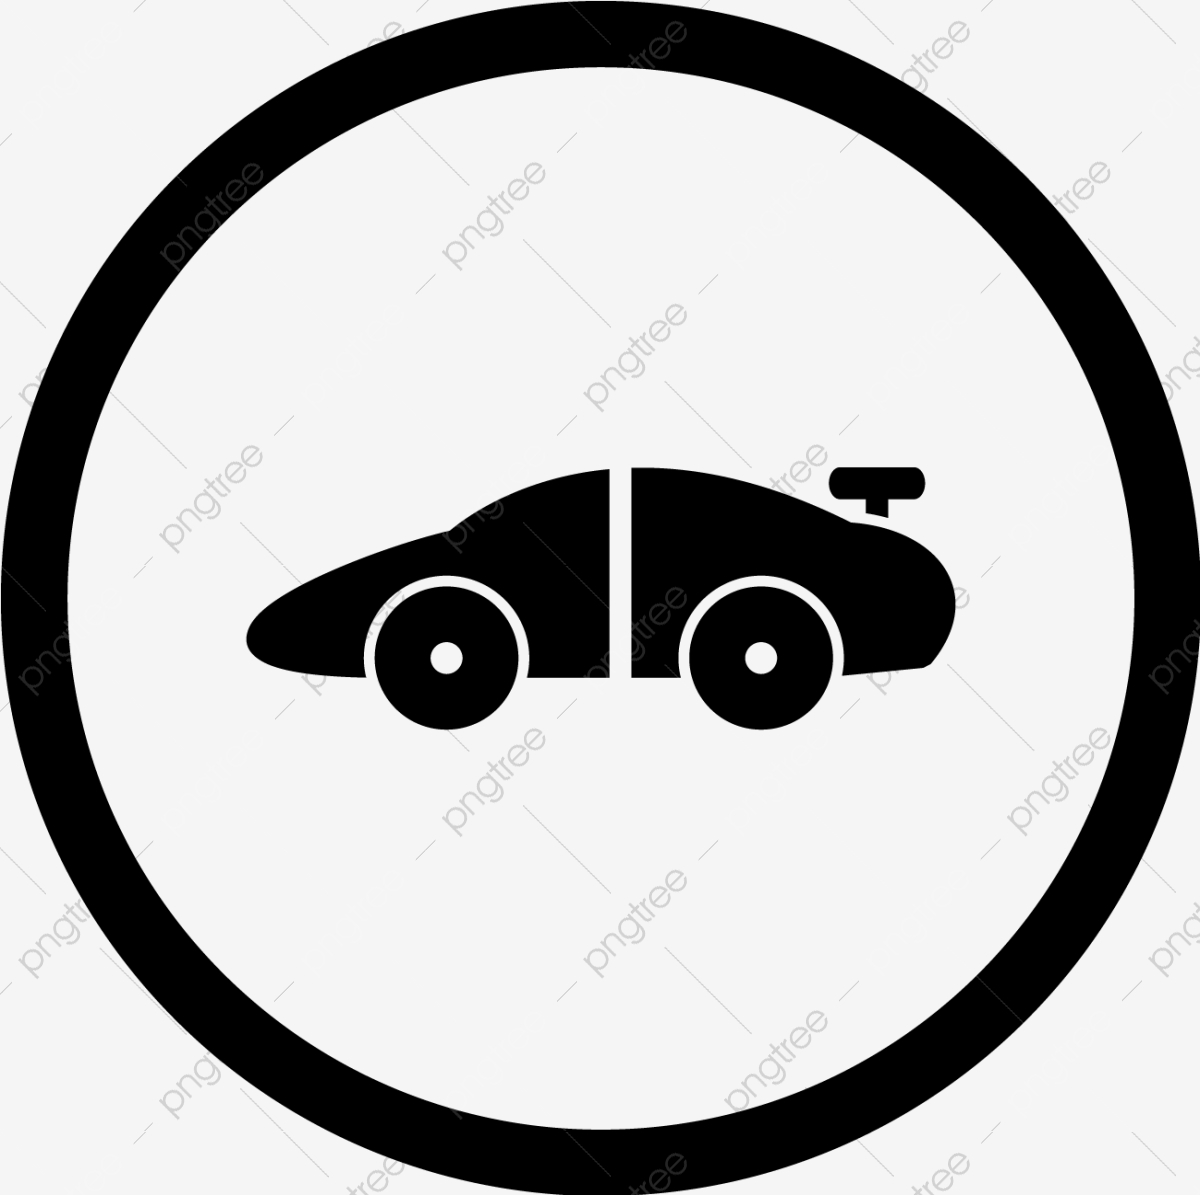 Vector Sports Car Icon Race Car Sportscar Png And Vector With